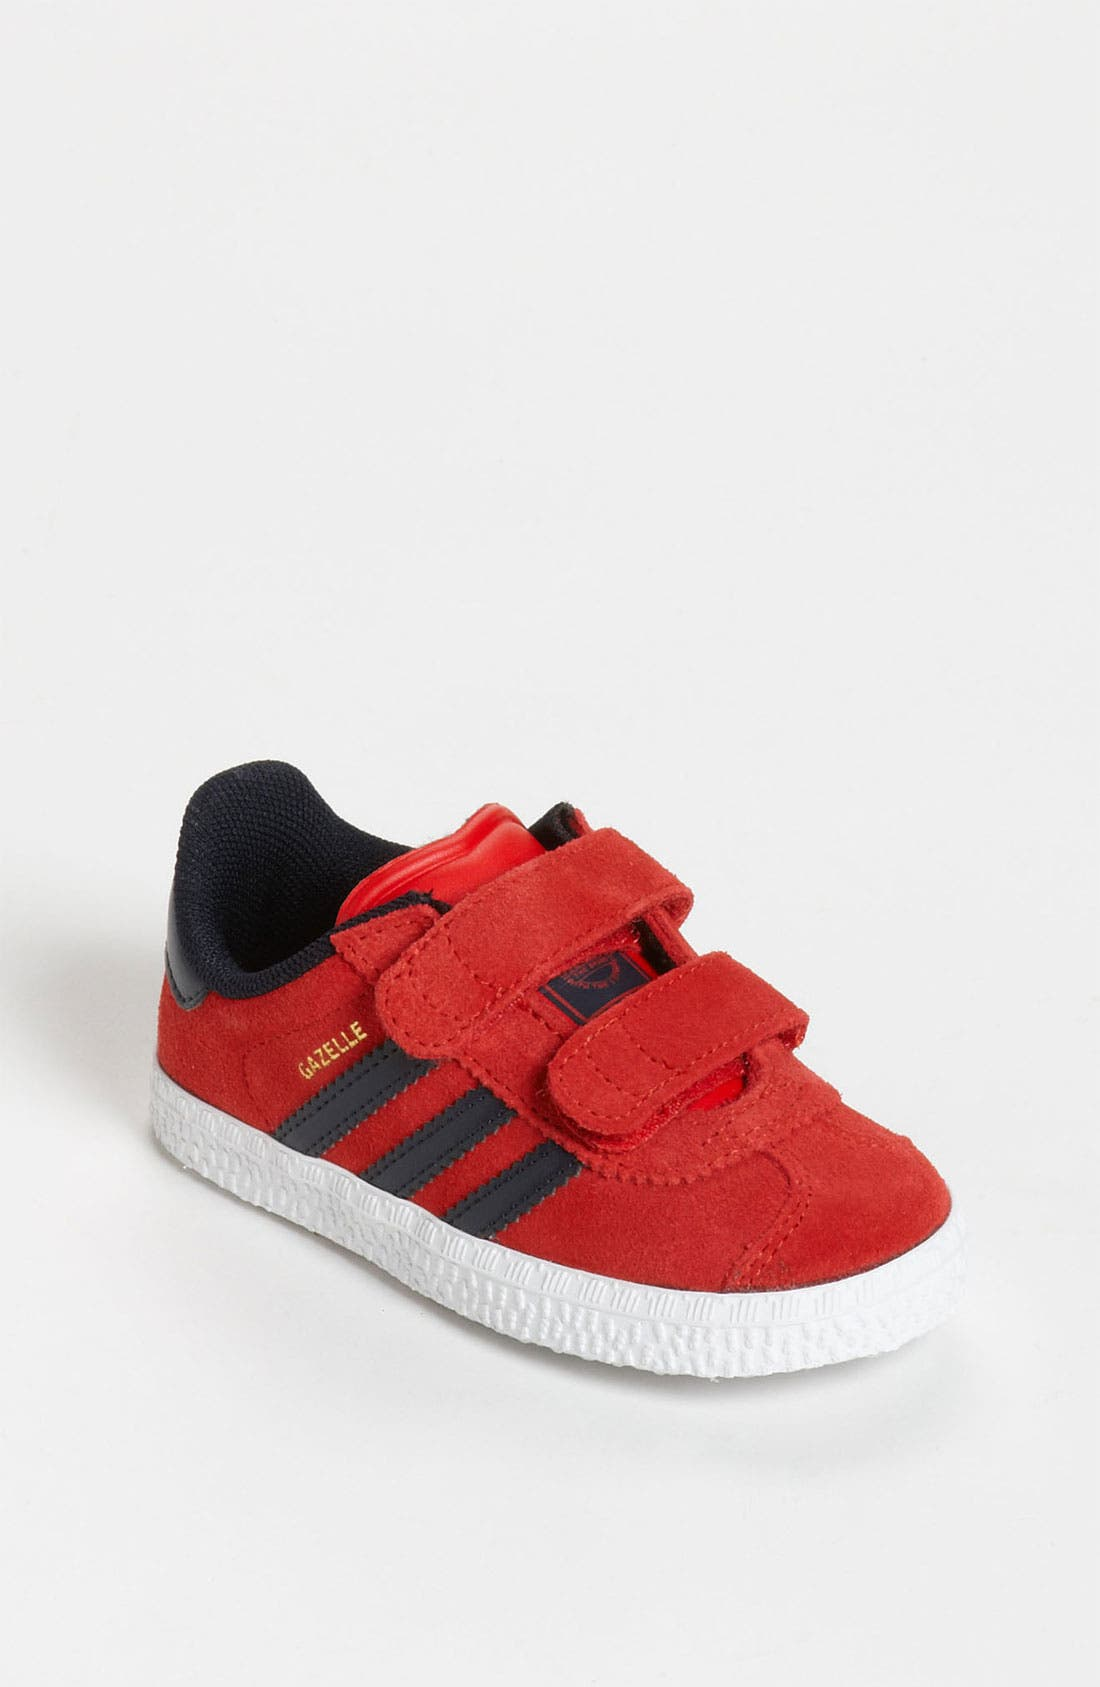 Main Image - adidas 'Gazelle' Sneaker (Baby, Walker & Toddler)